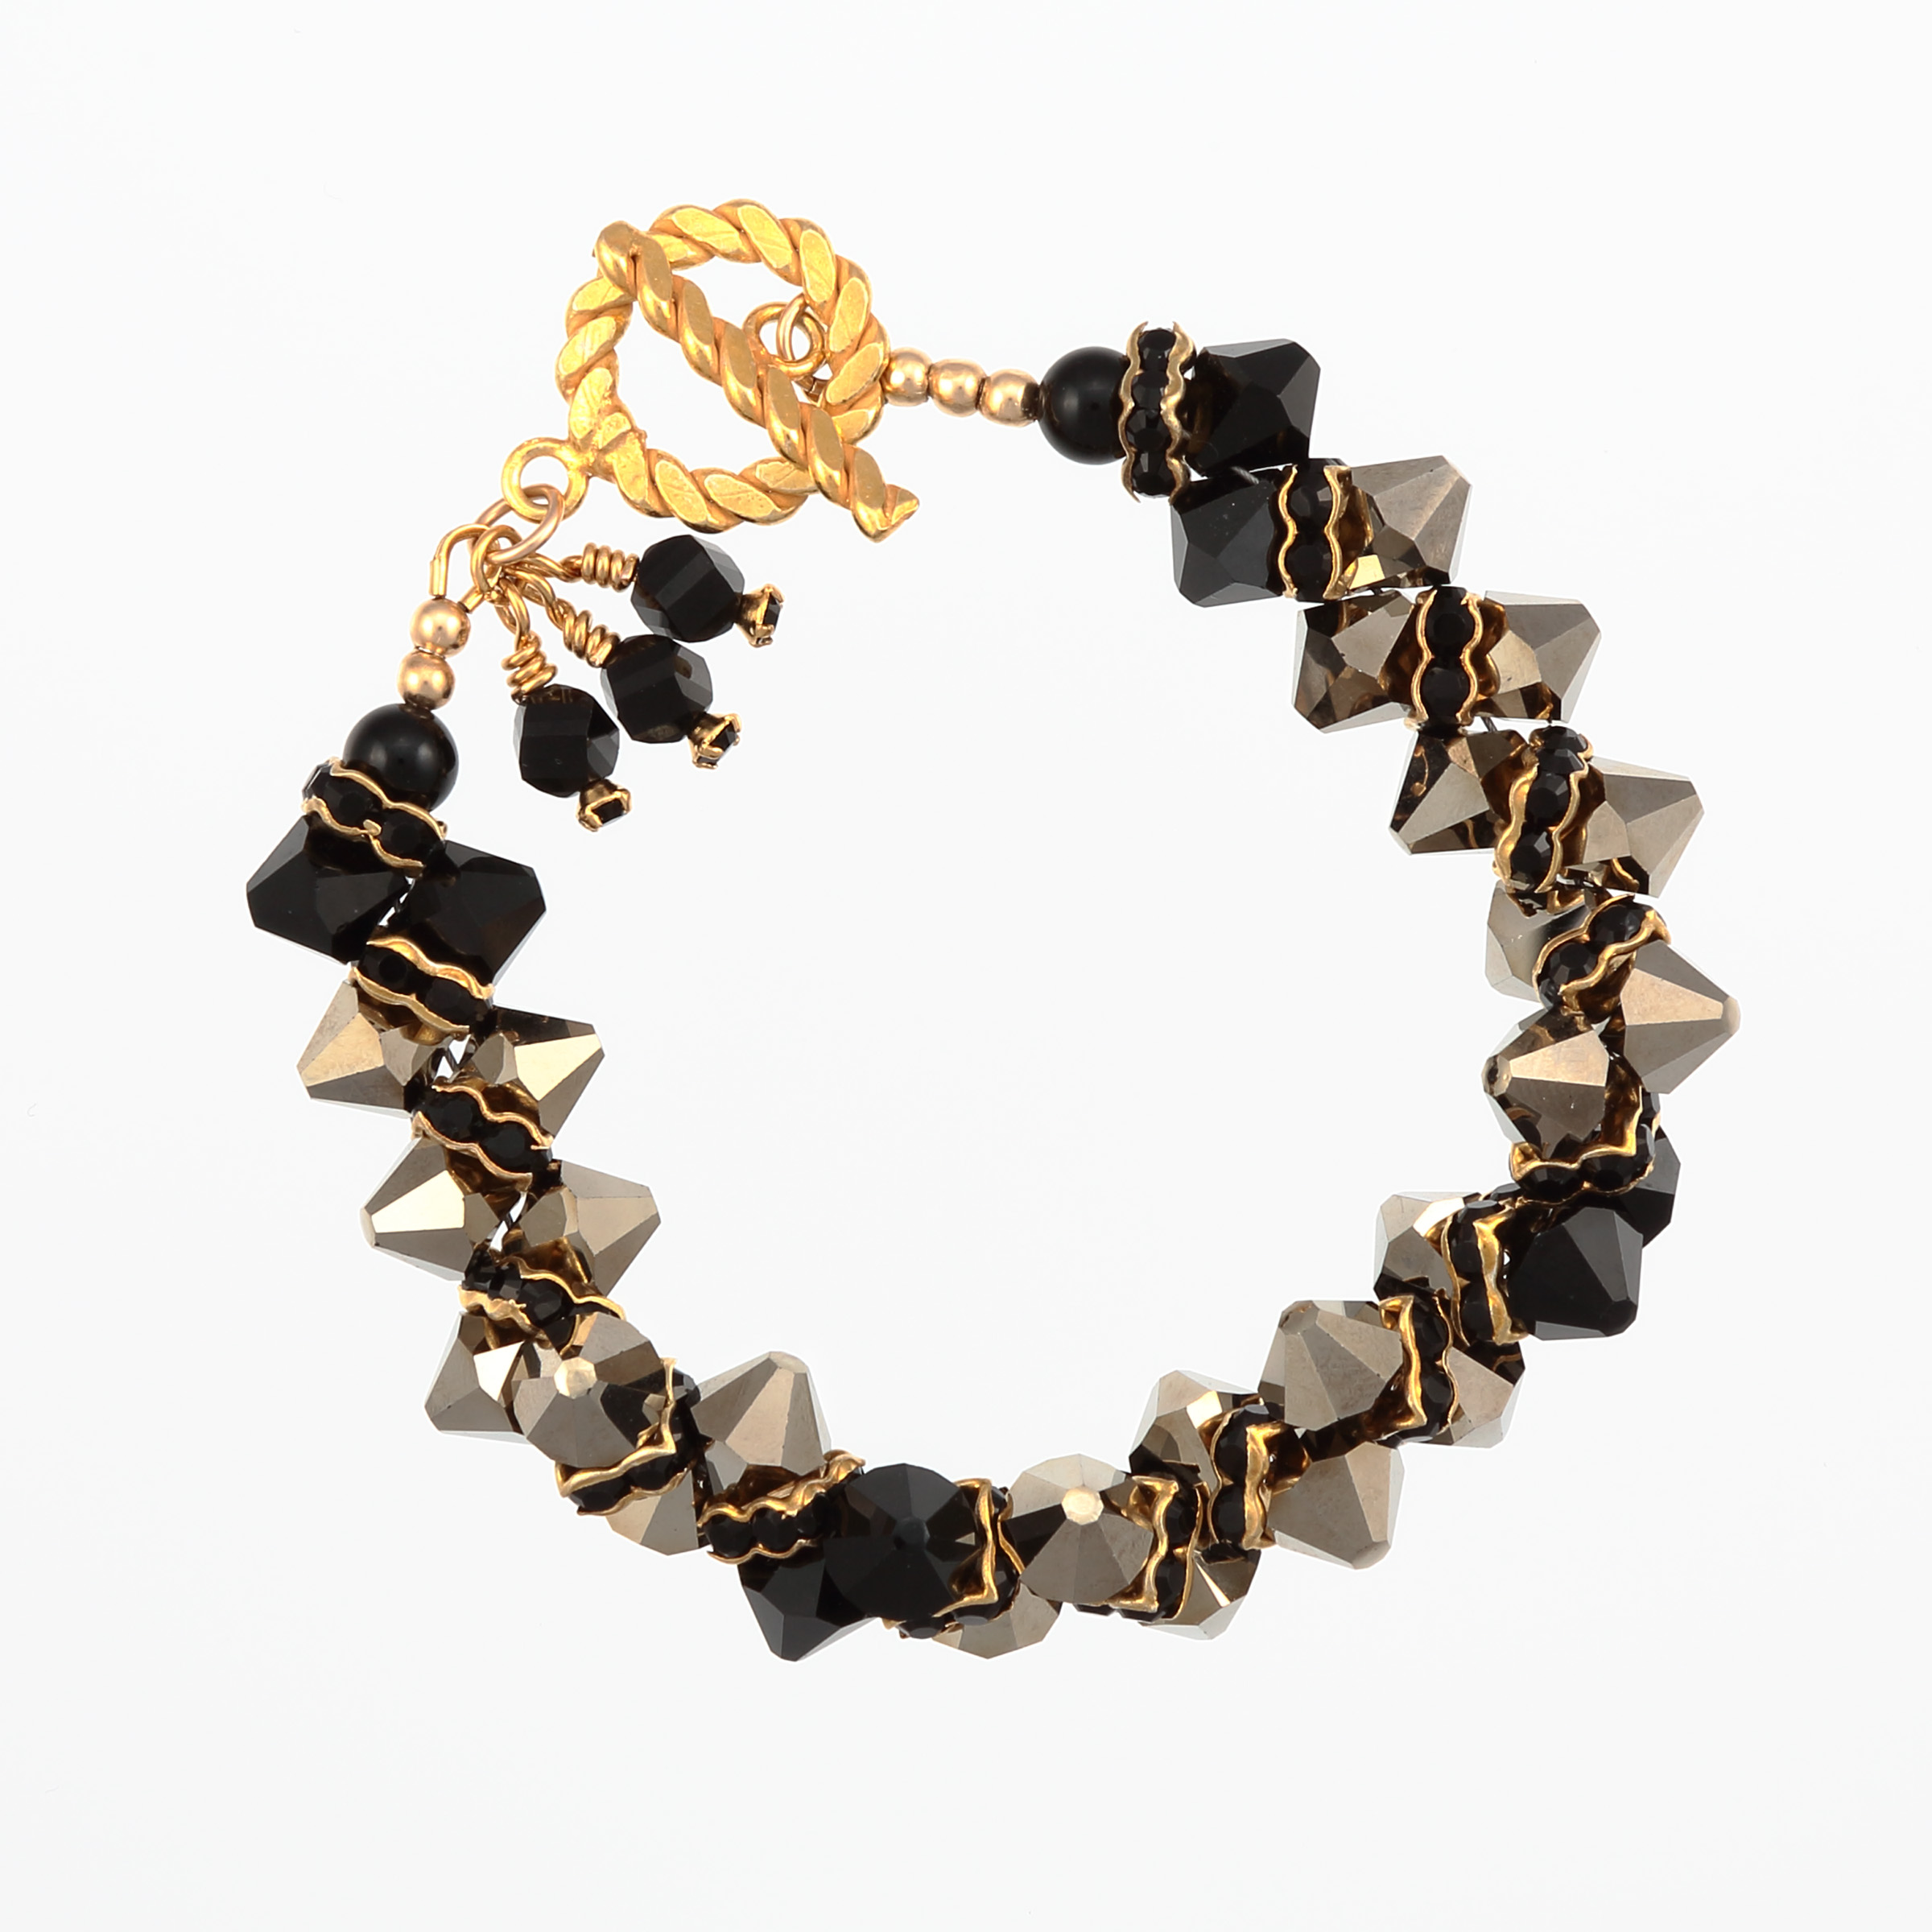 BLACK GOLD BRACELET- metallic gold and black Swarovski crystals with gold vermeil toggle clasp